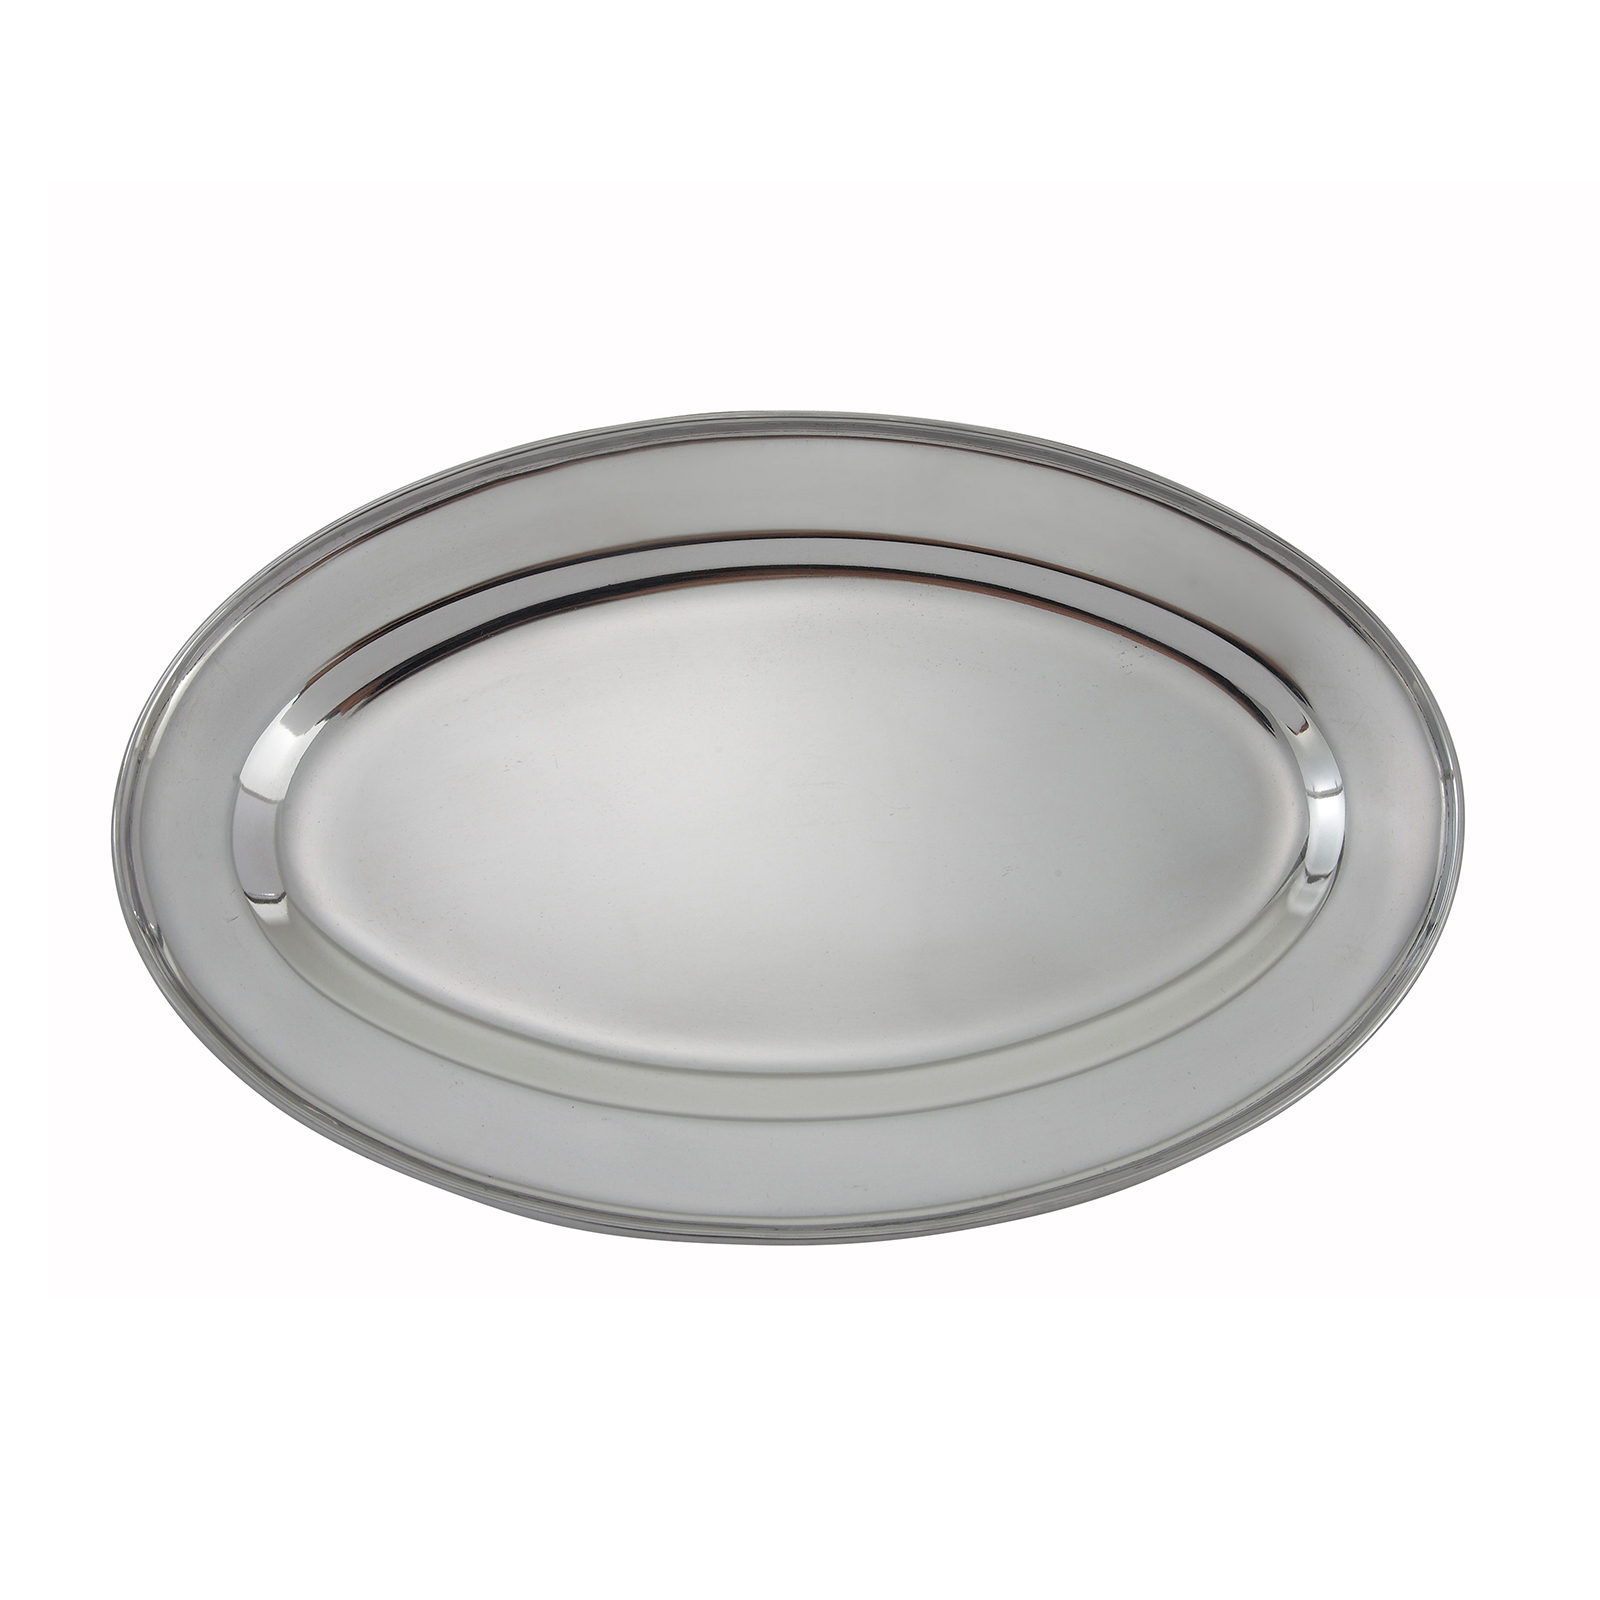 Winco OPL-14 platter, stainless steel